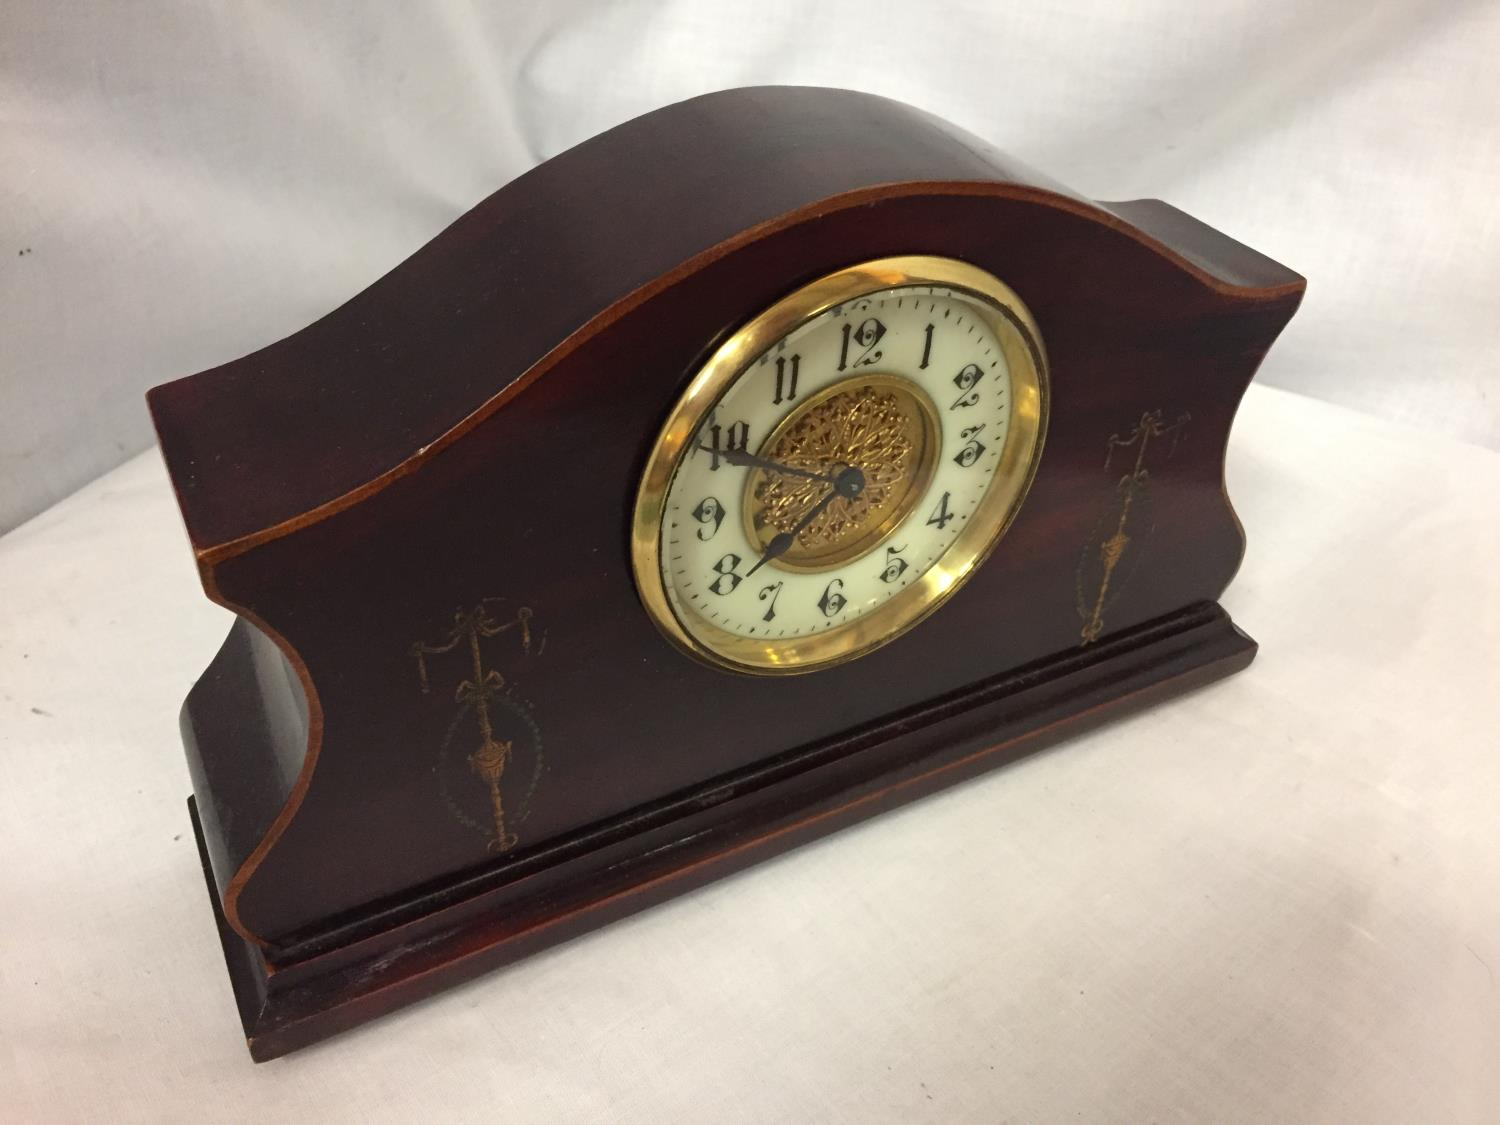 AN INLAID MAHOGANY MANTLE CLOCK WITH GILDED CENTRE FACE AND ENAMEL DIAL - Image 2 of 4